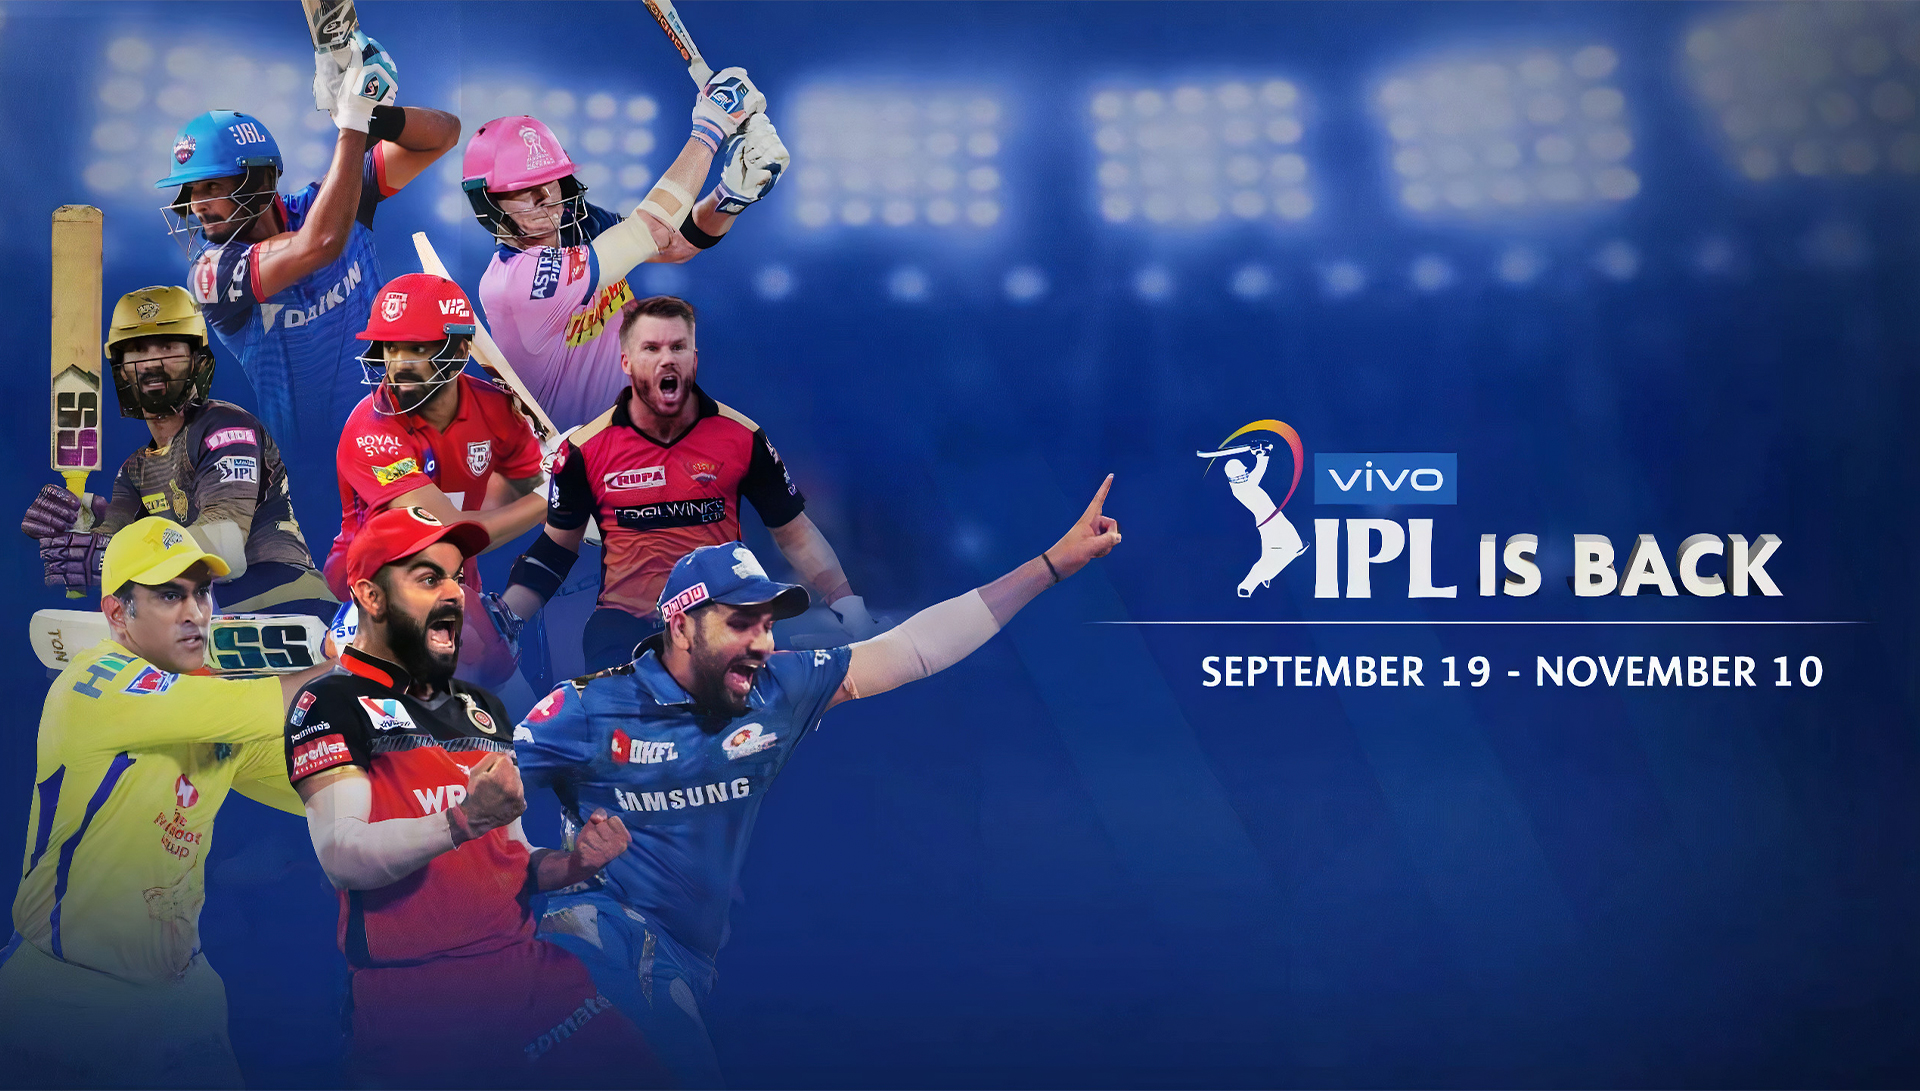 You can place bets on IPL after registering on the site